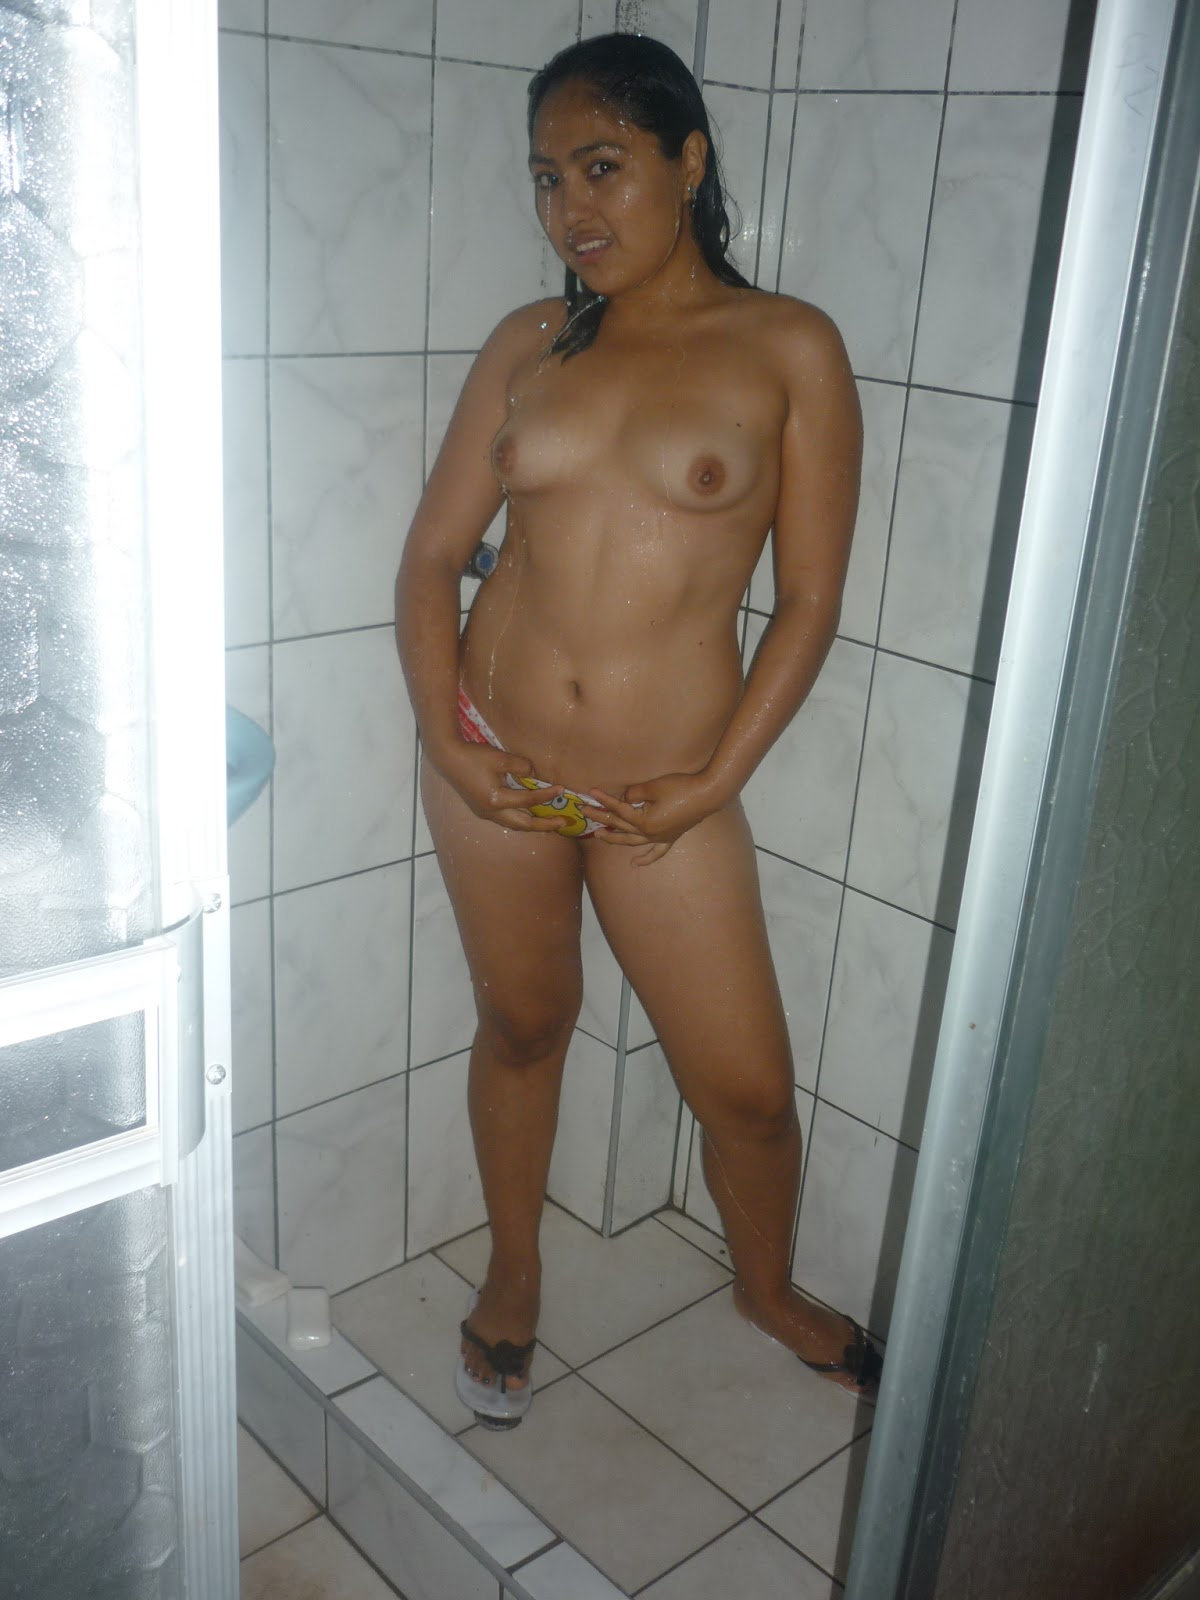 videos señoras putas escorts peru